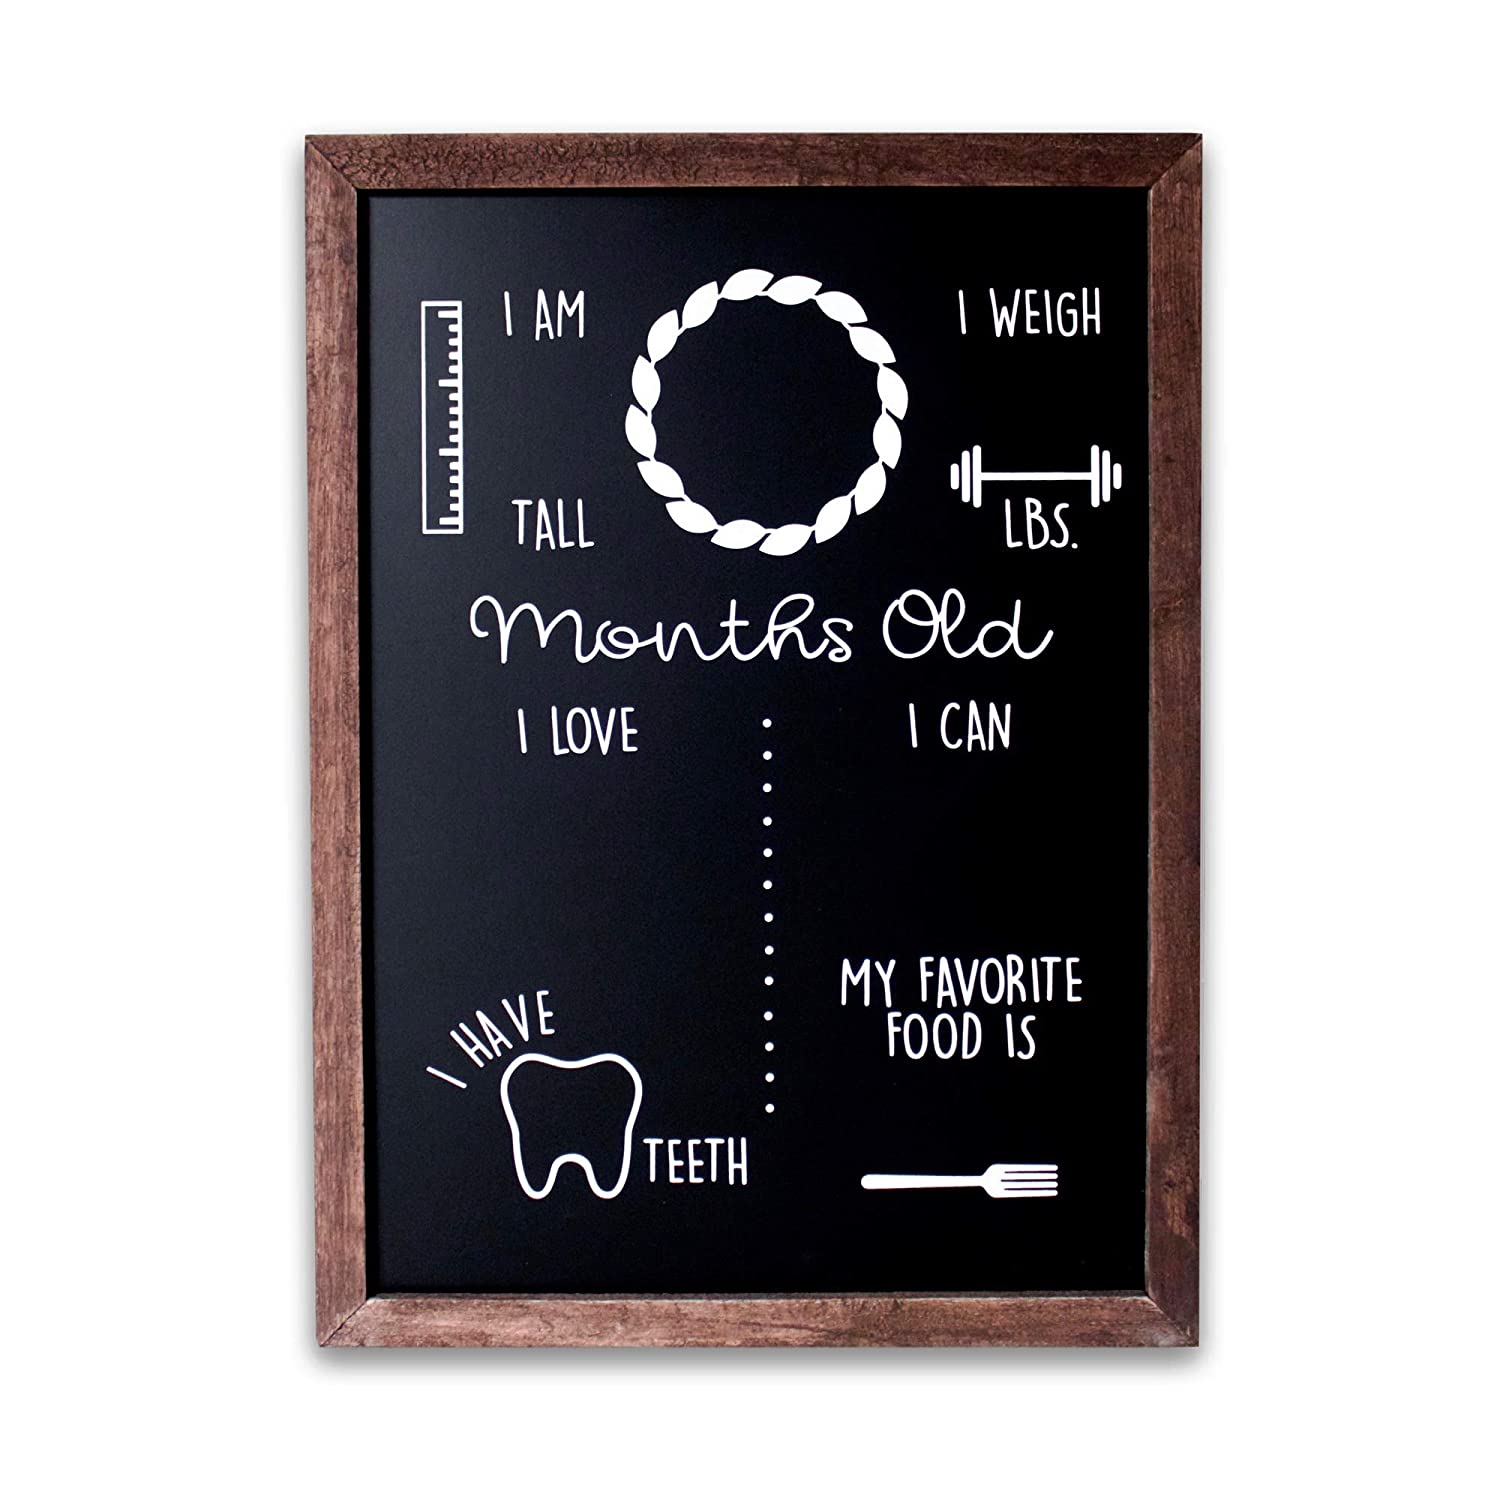 """Olive & Emma Baby Monthly Milestone Chalkboard   12"""" x 16"""" Wood Framed Reusable Baby Photo Prop Board   New Mom Baby Shower Gift"""